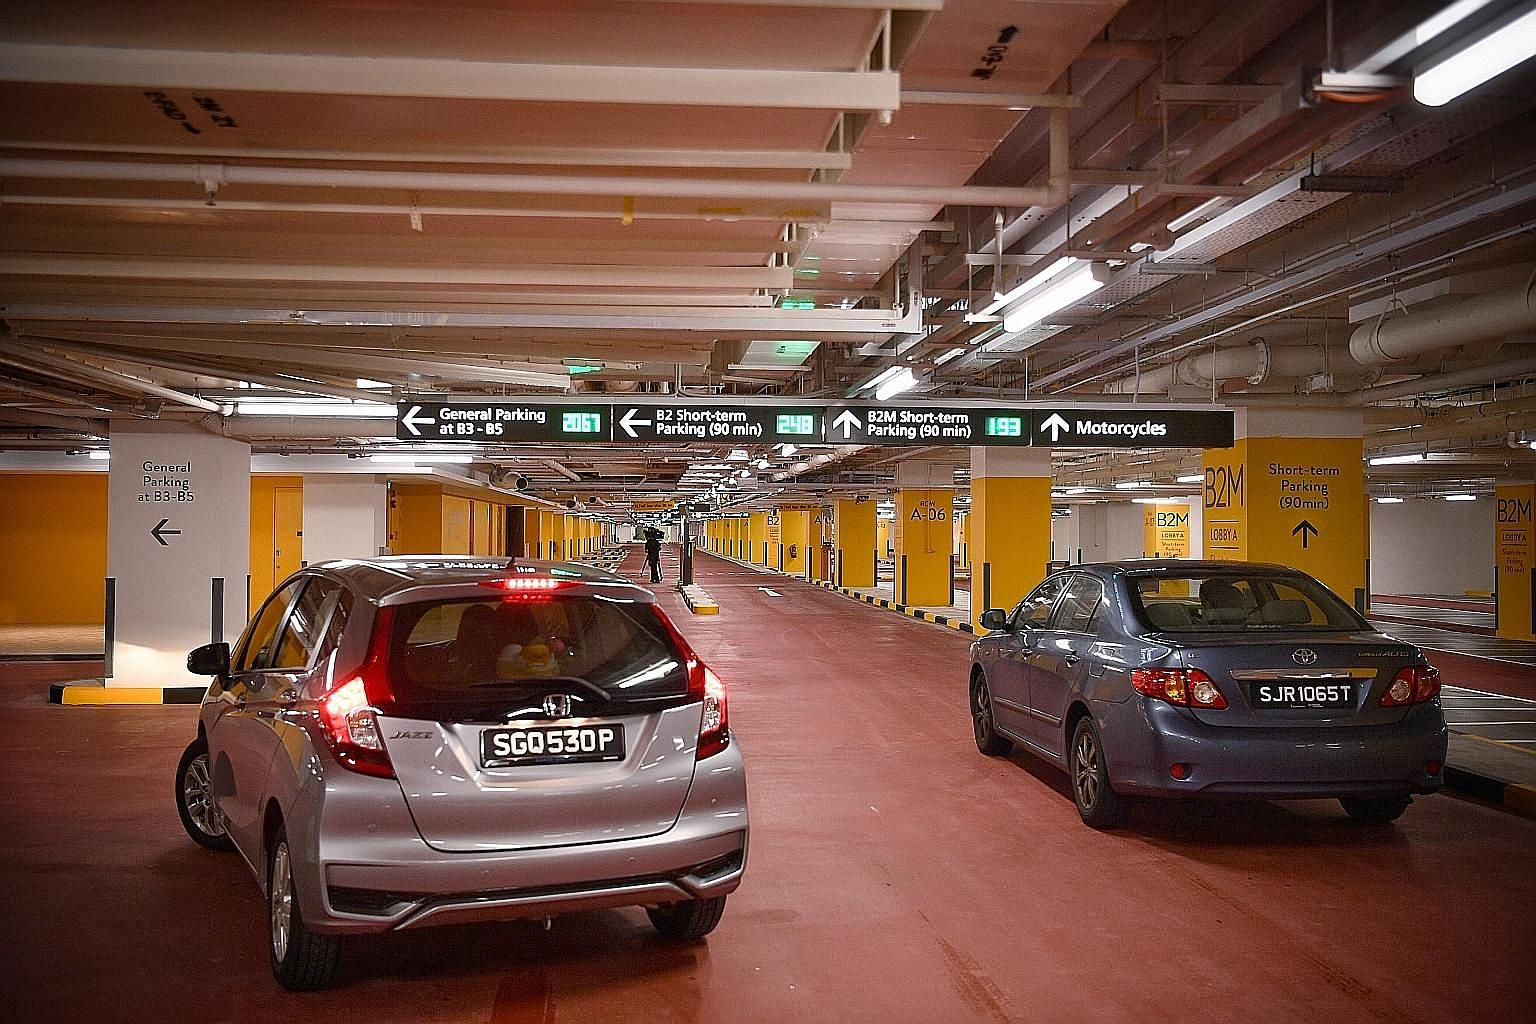 The entrance to the new carpark at Changi Airport's Terminal 1. There will be signs to inform drivers of the tiered charges at B2M and B2, and exit routes to take them to the lower floors even if they end up on the wrong level.